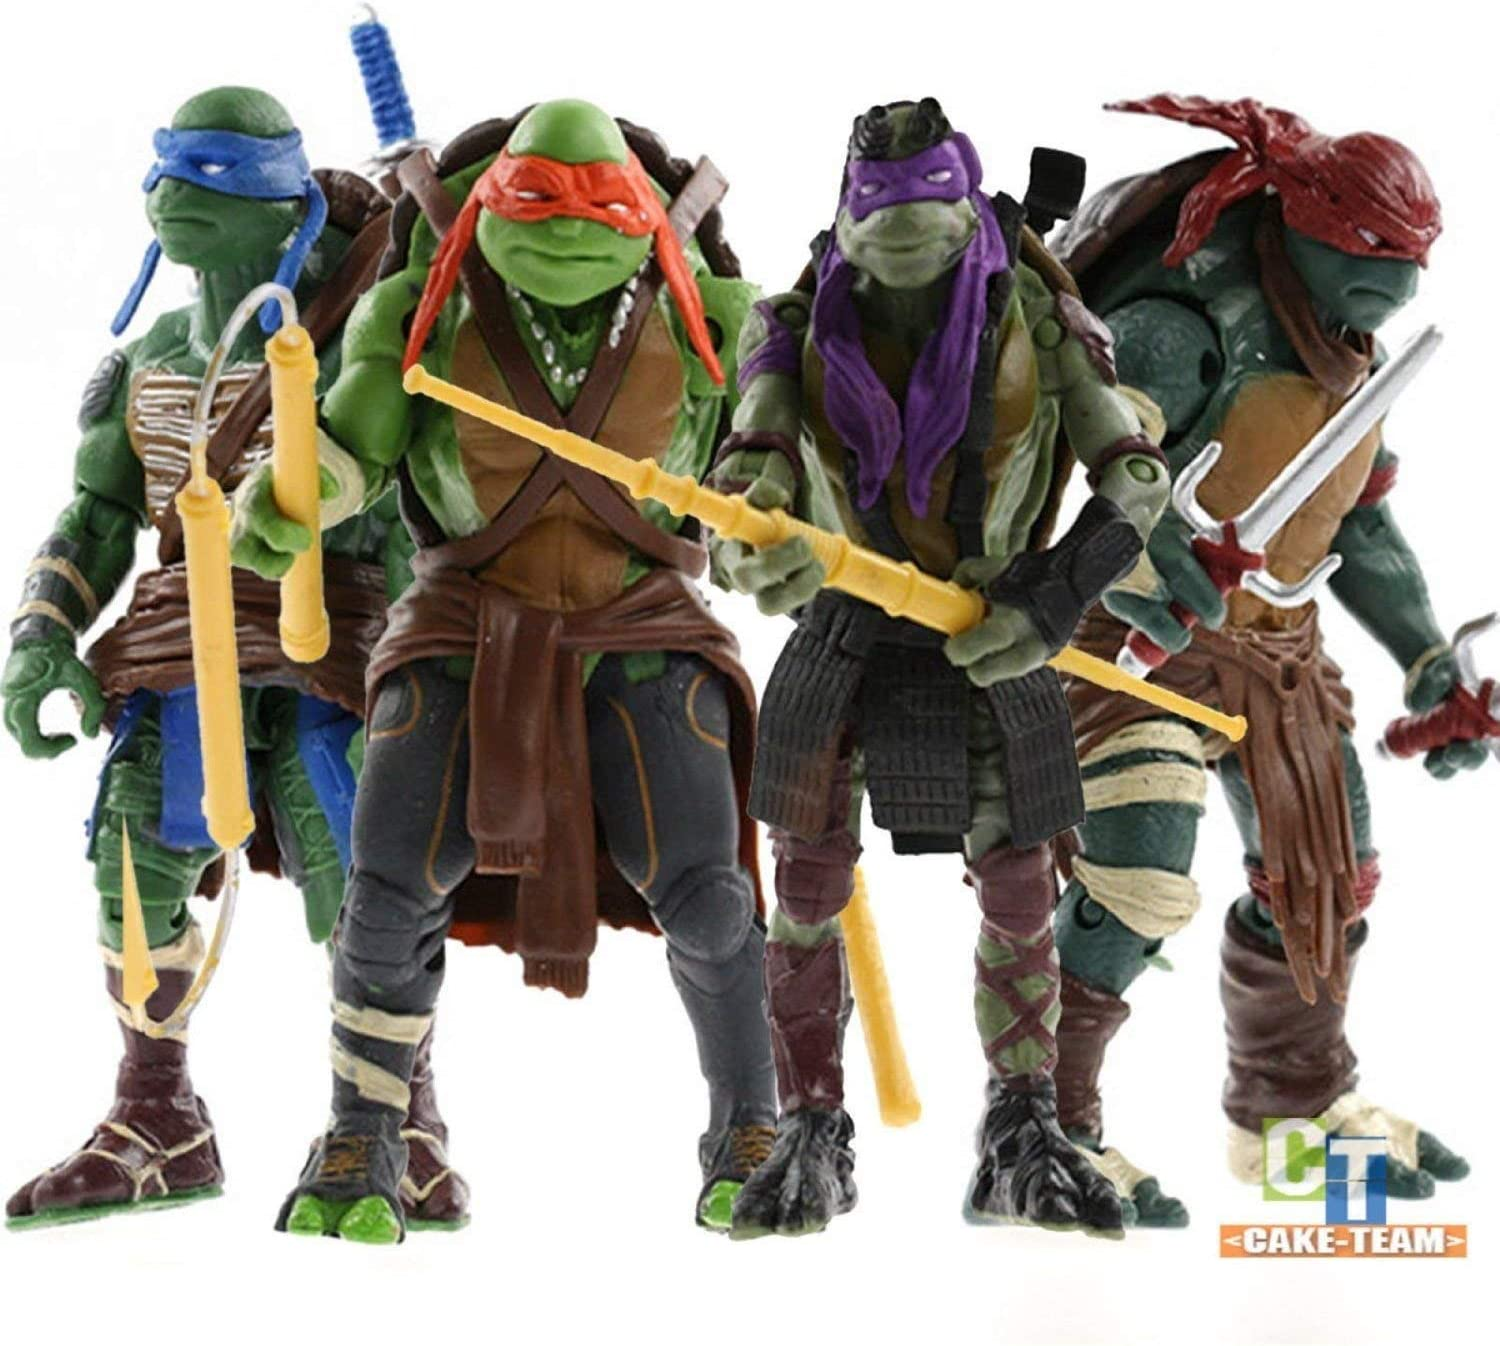 VITADAN Turtles 4 PCS Set New - Mutant Ninja Action Figure - TMNT Action Figures - Turtles Toy Set - Ninja Turtles Action Figures Mutant Teenage Set